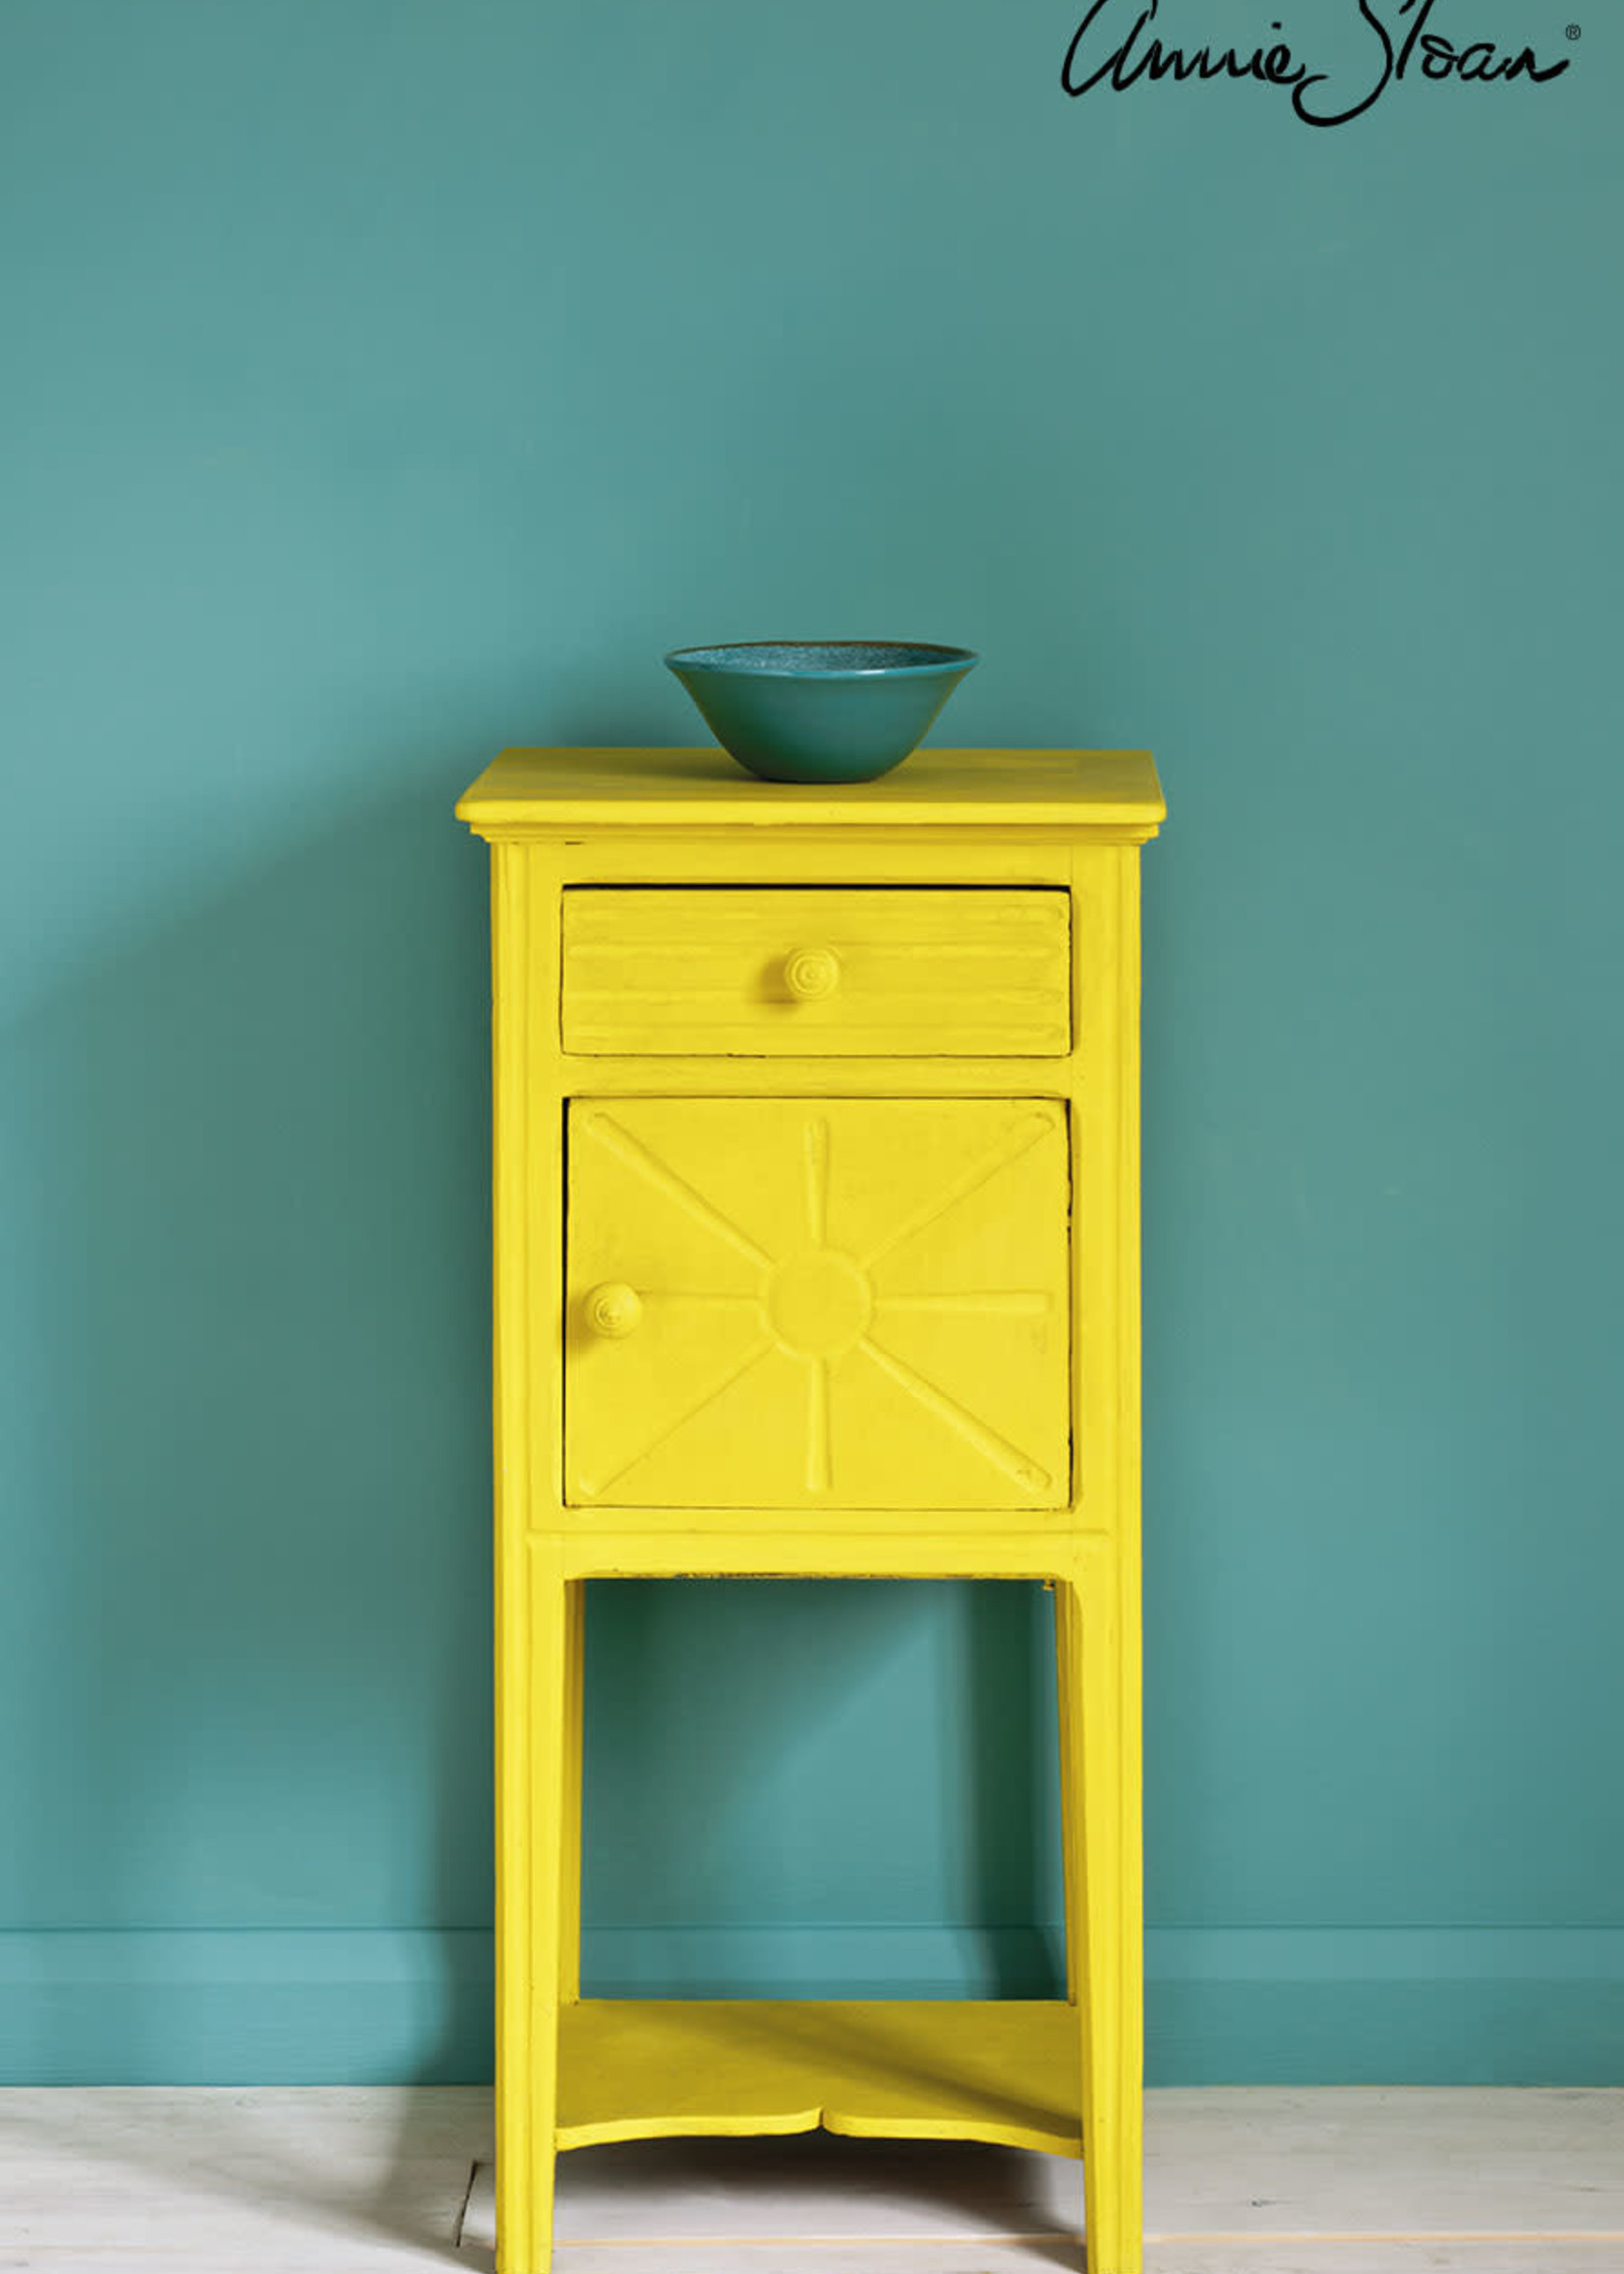 Bloom Intro to ChalkPaint Workshop October 2021